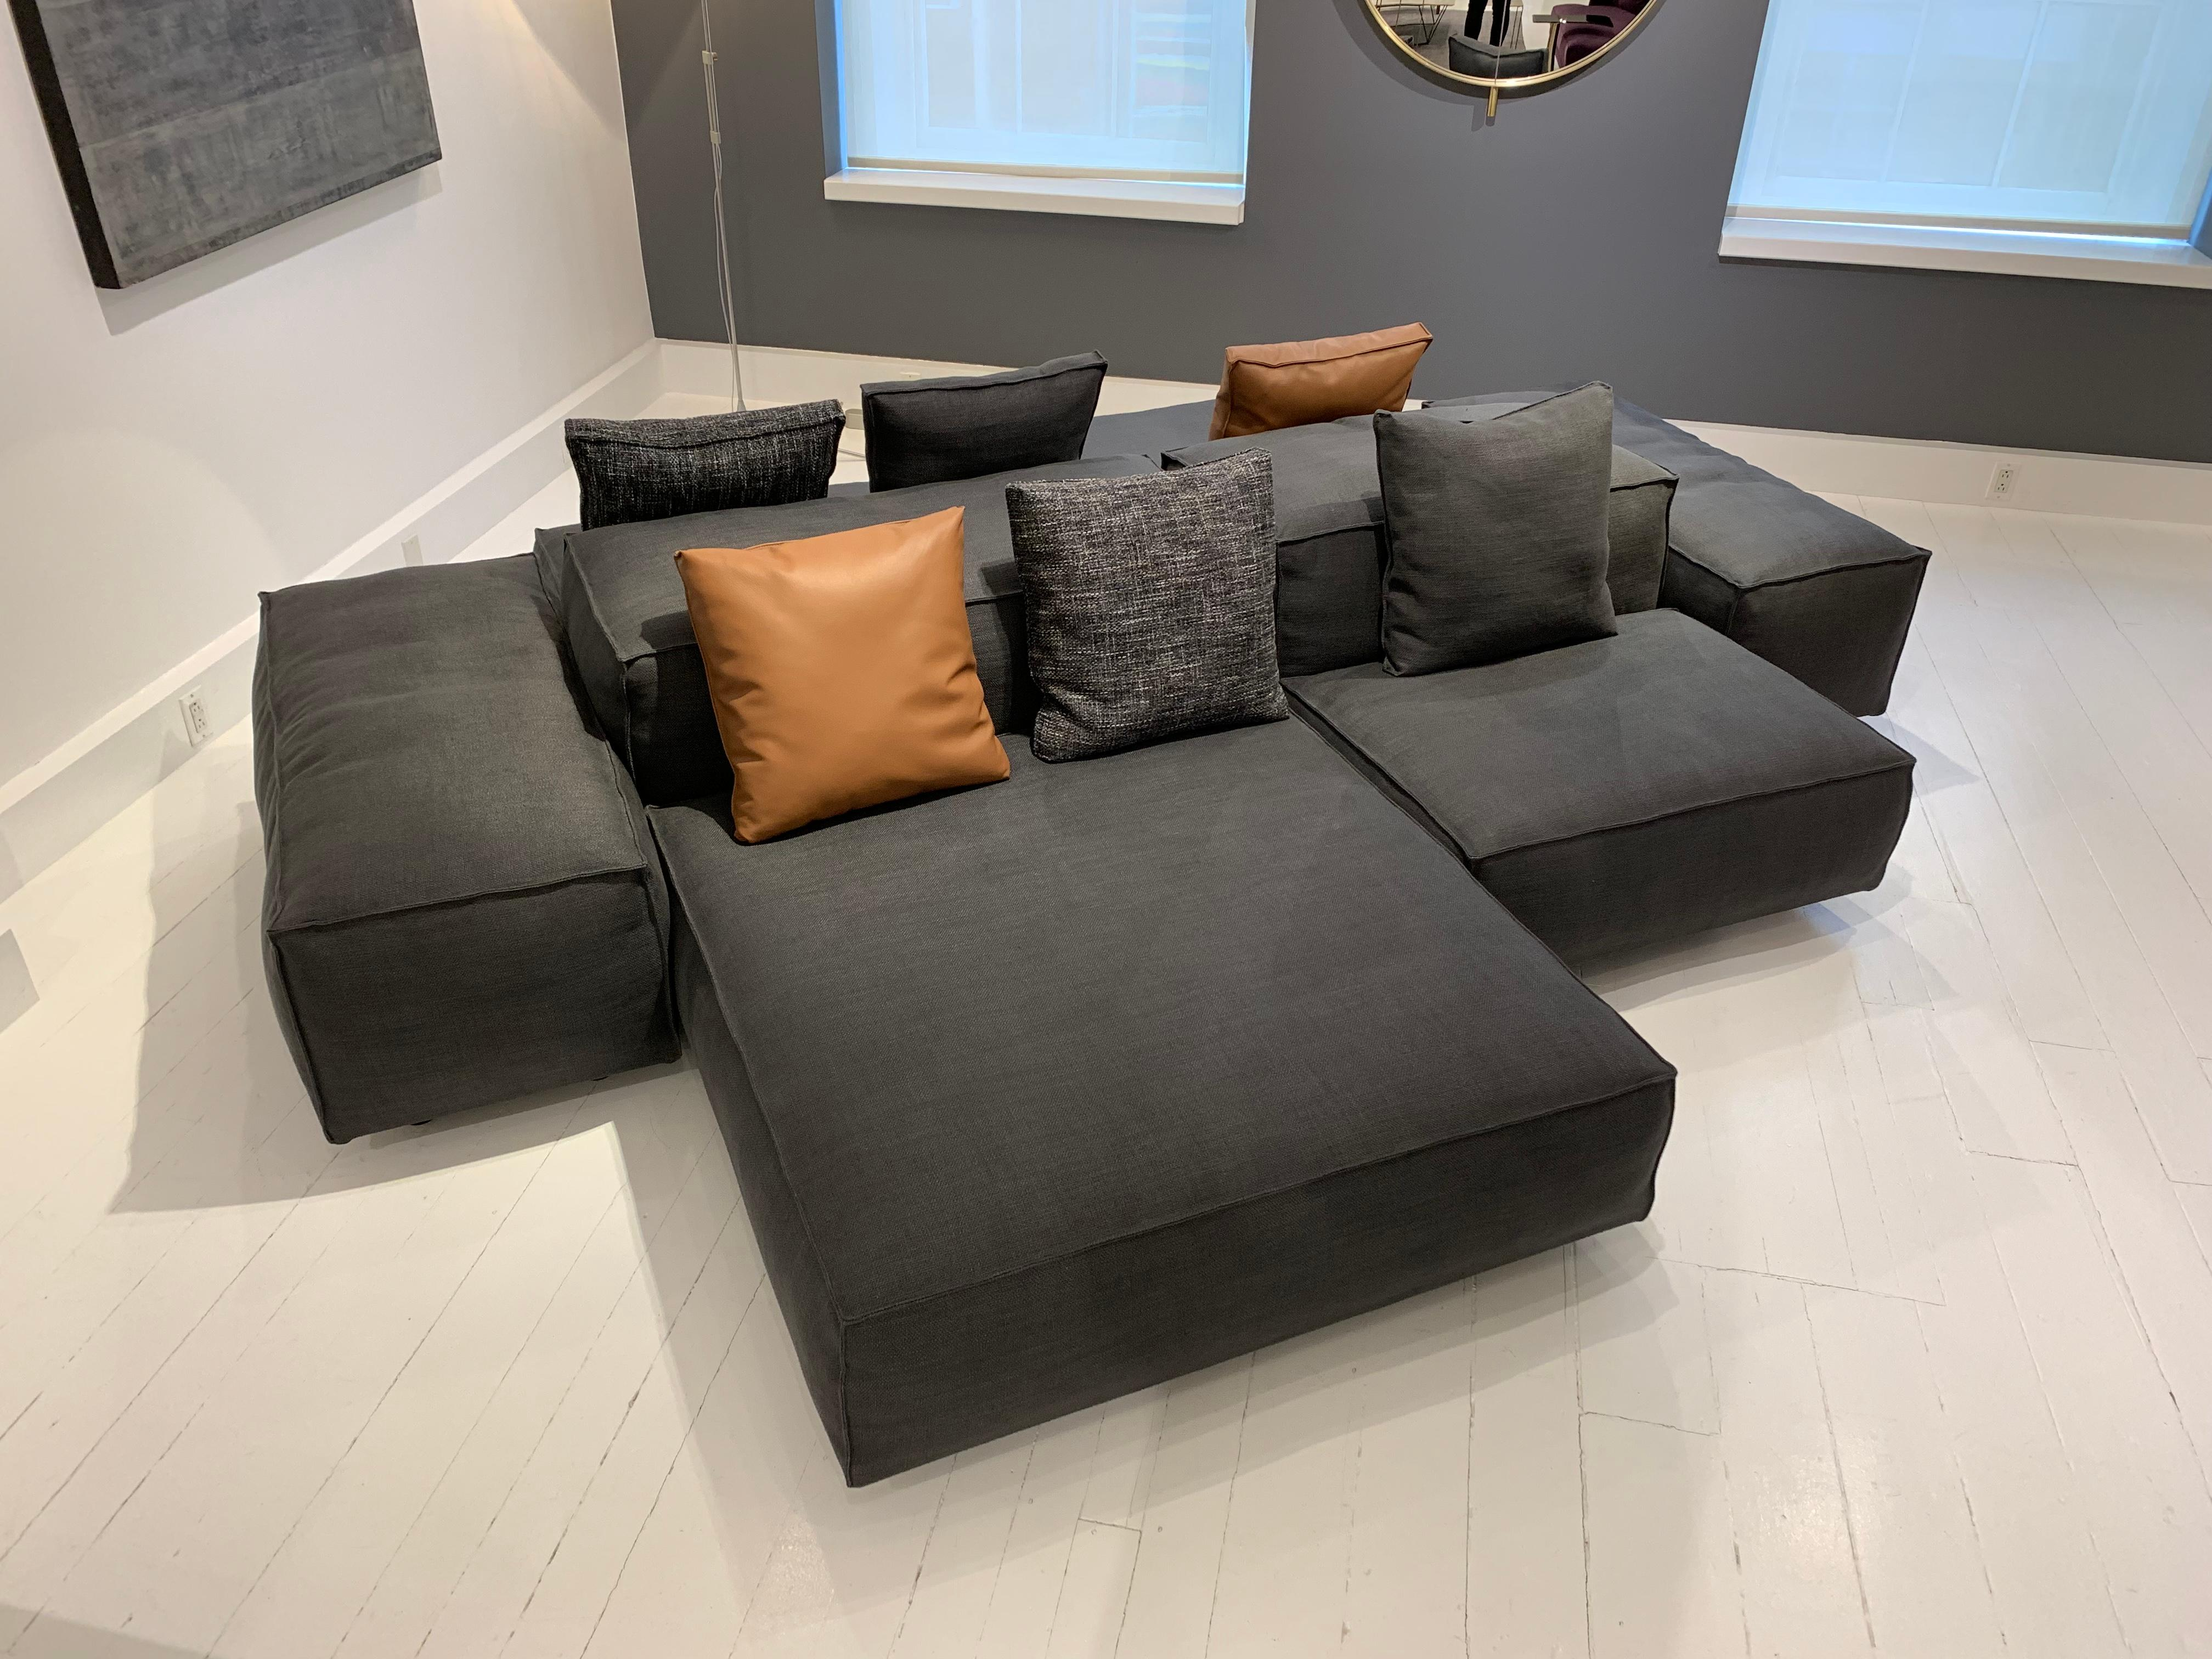 Living Divani Extra Soft.Extrasoft 8 Piece Modular Sofa In Gray Fabric By Piero Lissoni And